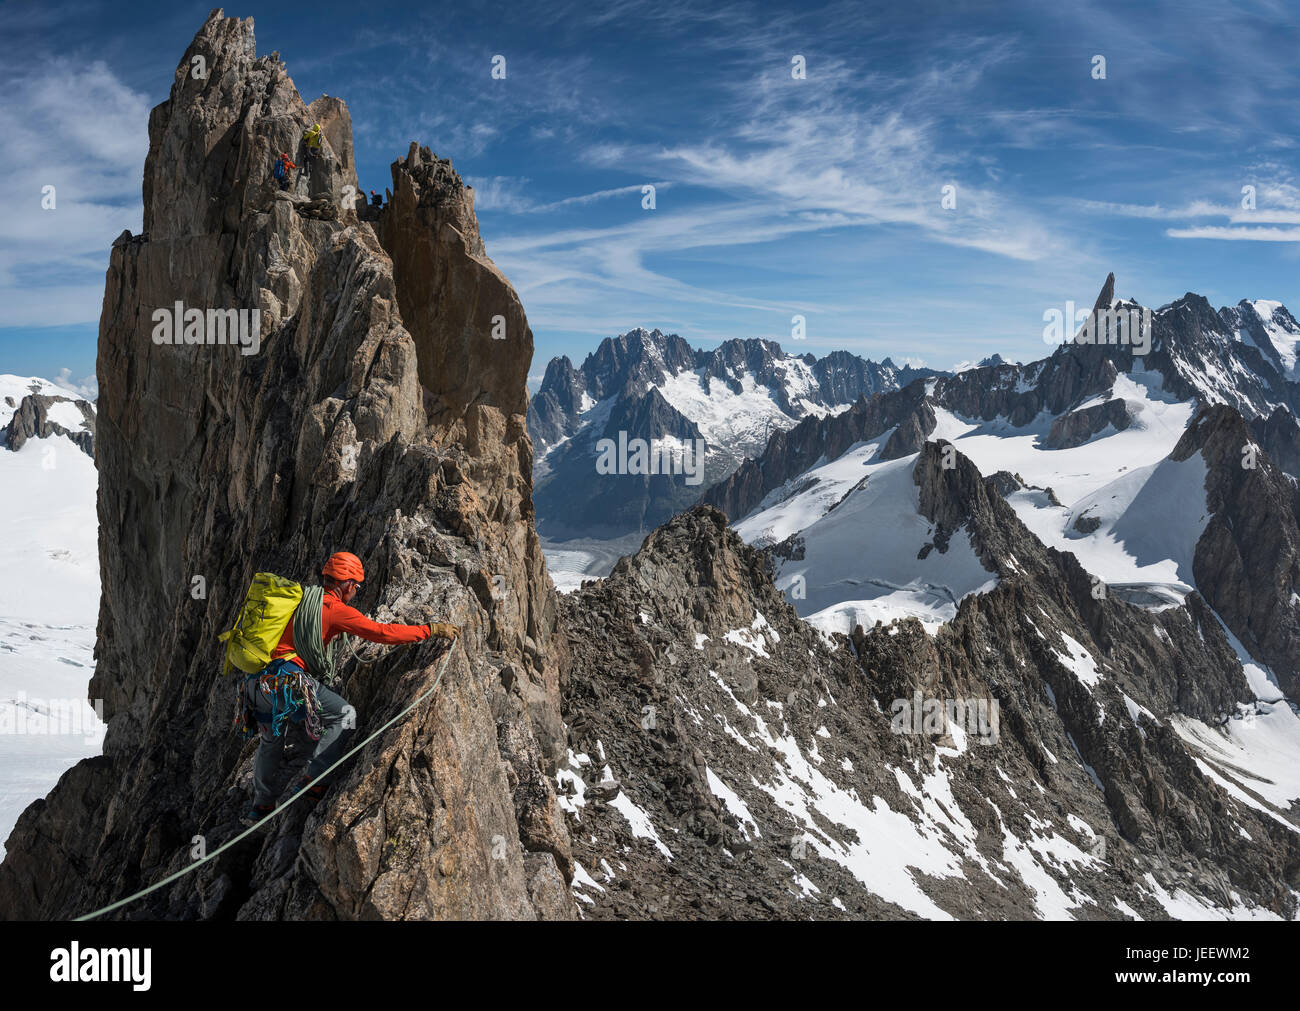 A climber on the traverse of the Aiguille d'Entrees in the Mont Blanc massif Stock Photo